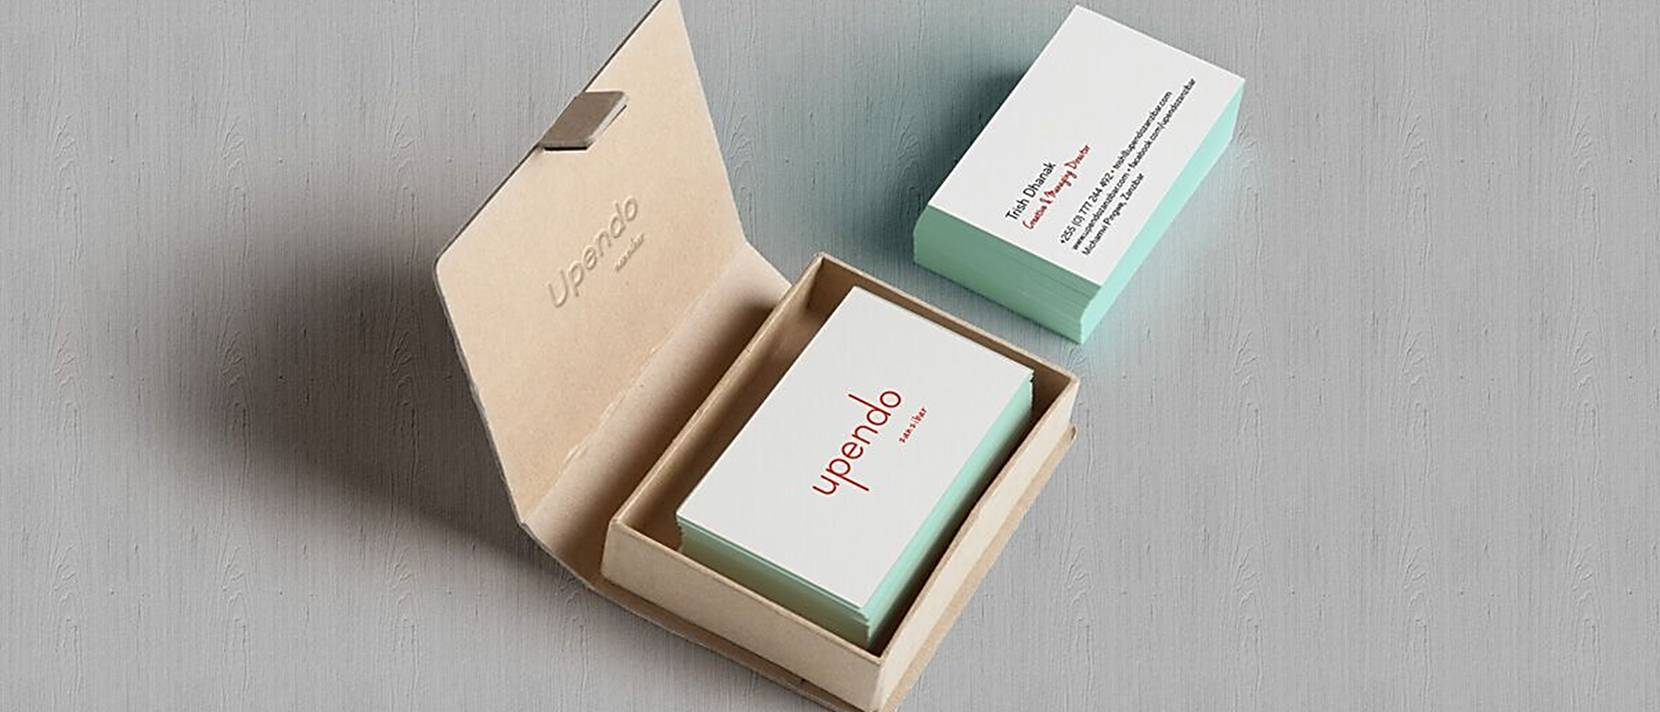 stack of cbusiness cards inside box with lid open and stack of business card on their own to the side